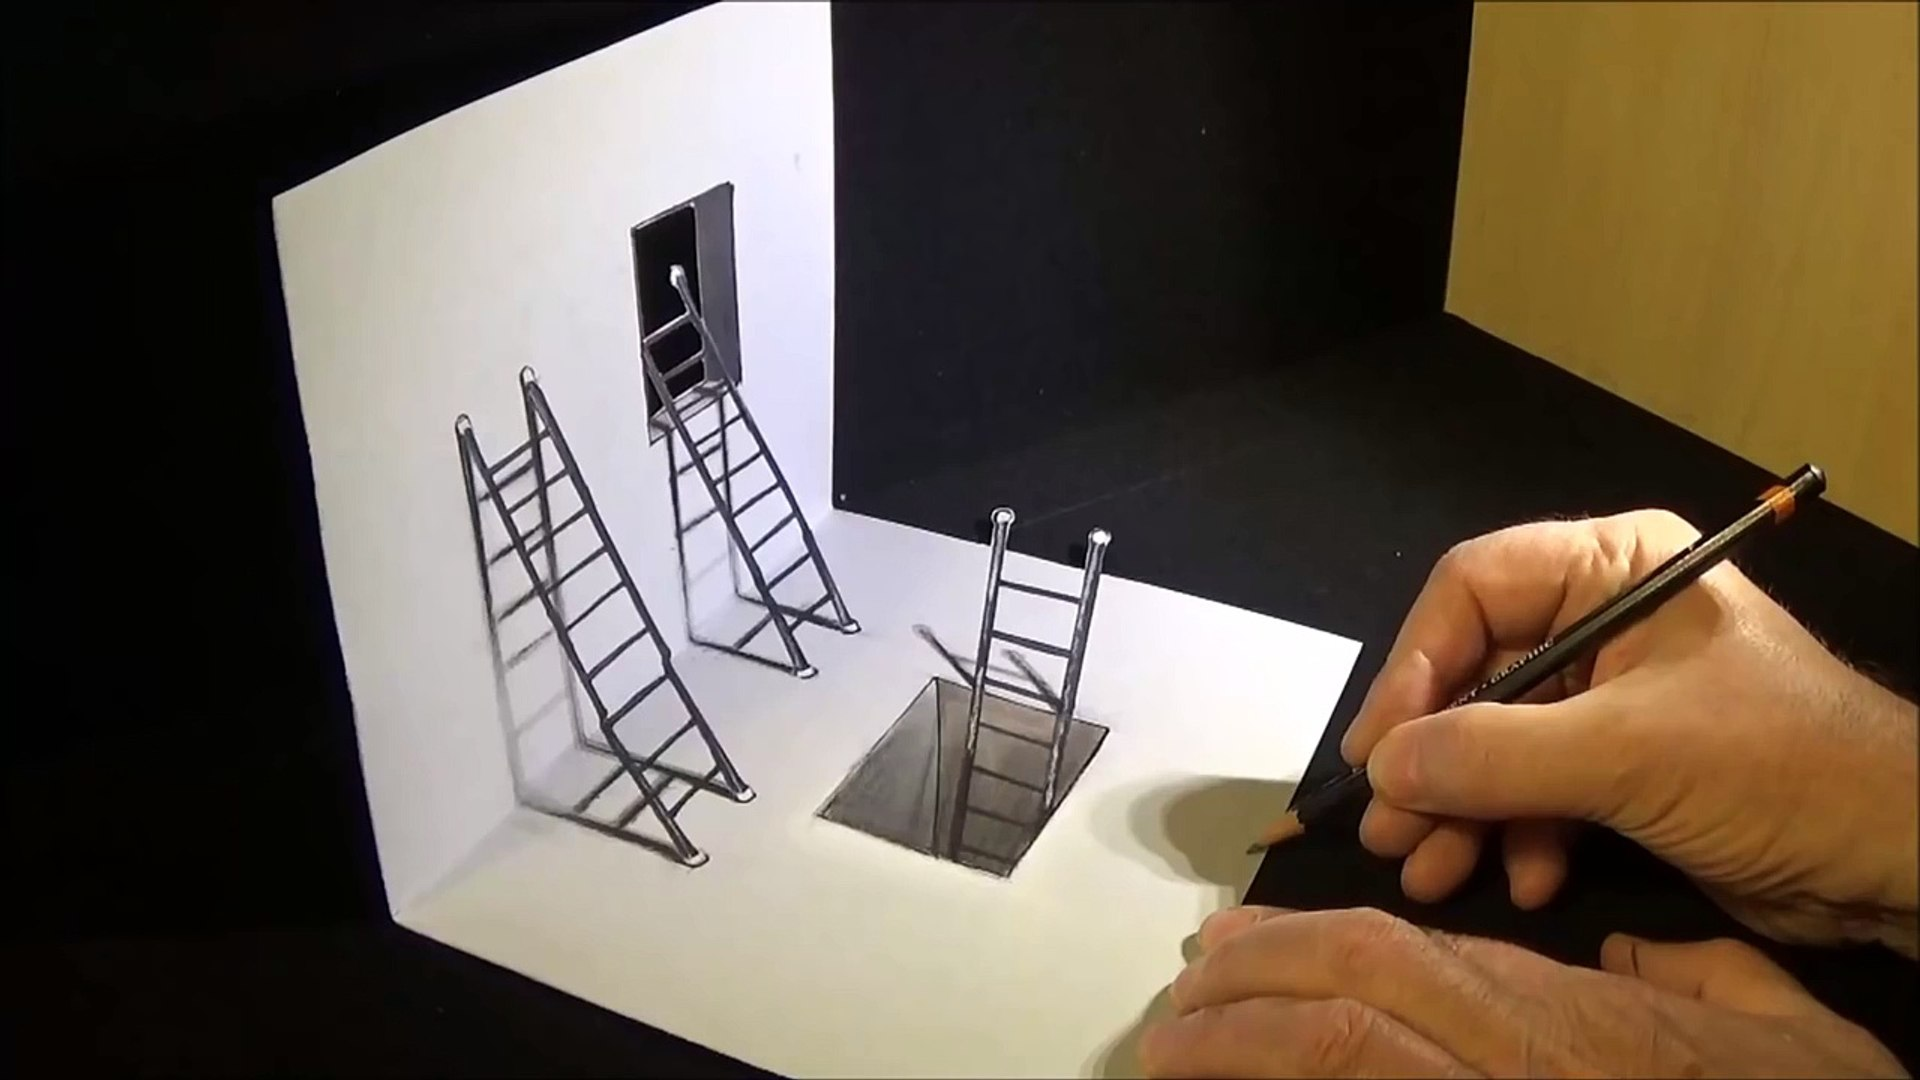 photo regarding Anamorphic Illusions Printable named How towards Attract Ladders - Drawing 3D Ladders - Optical Illusion upon Paper - VamosART